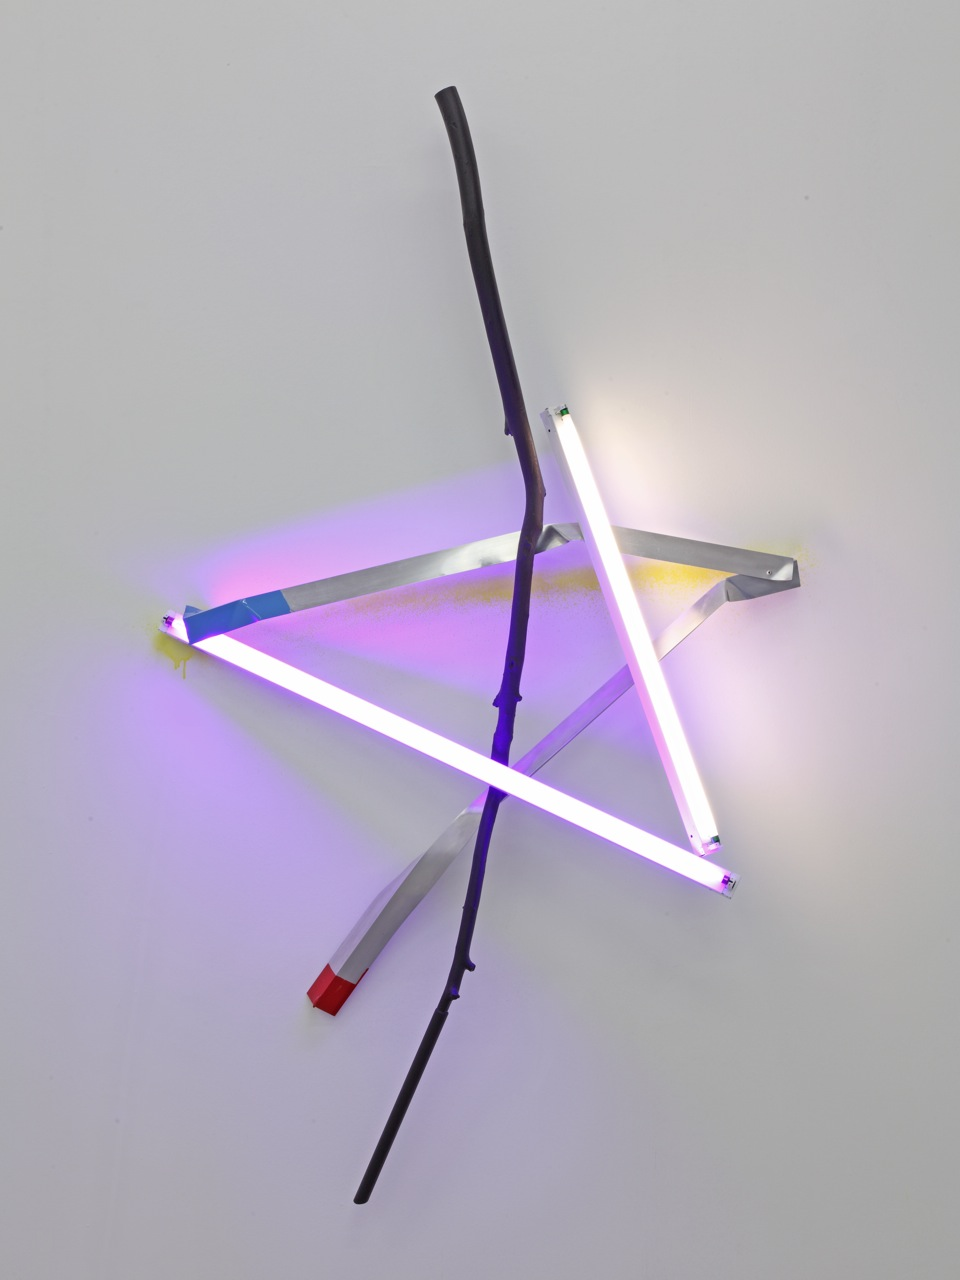 2013, neon ligths and electrical fixtures, wooden branch, aluminum, paint, 206 x 123 x 28 cm approx